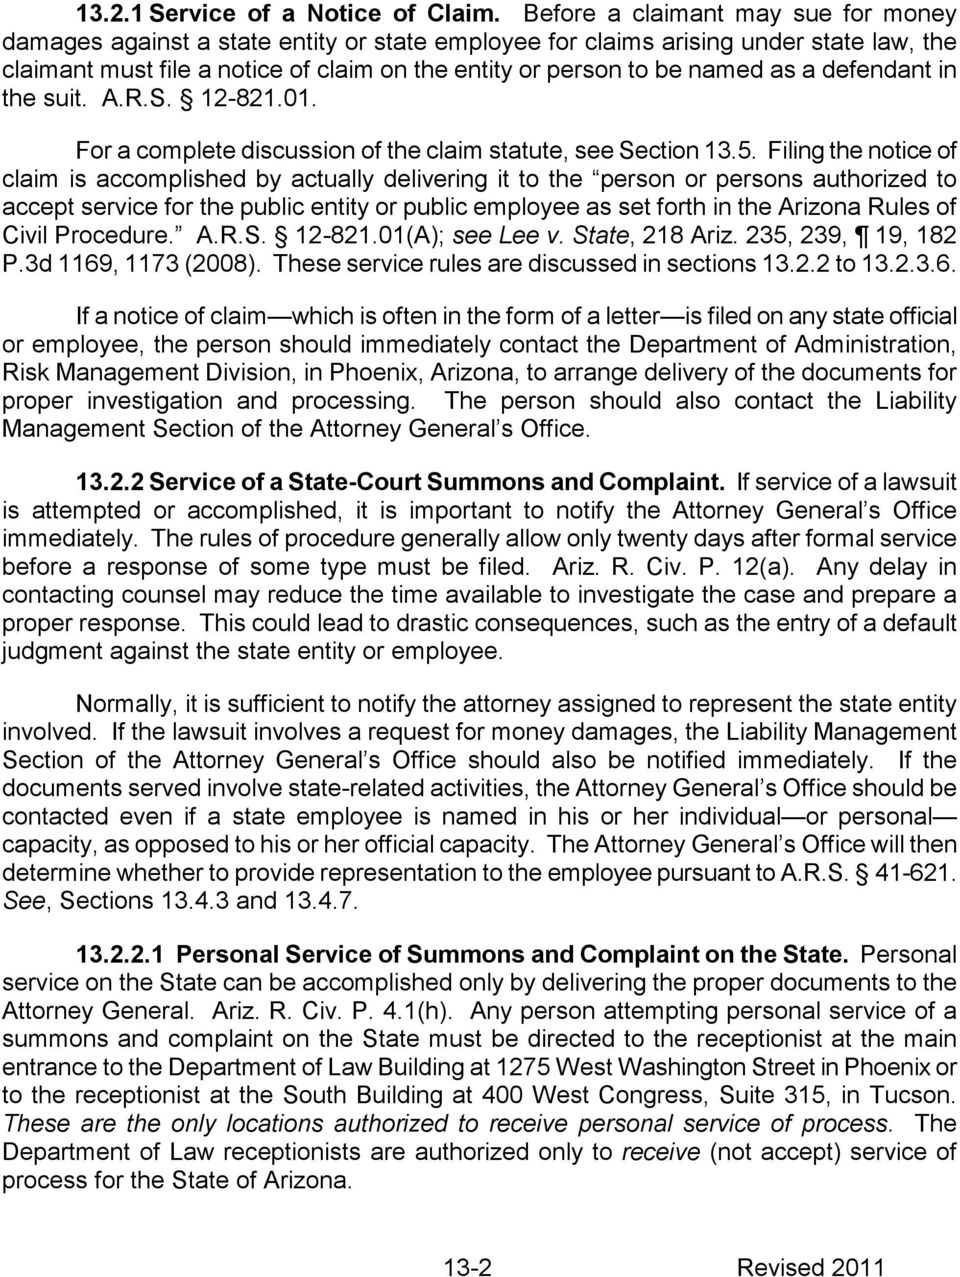 as a defendant in the suit. A.R.S. 12-821.01. For a complete discussion of the claim statute, see Section 13.5.